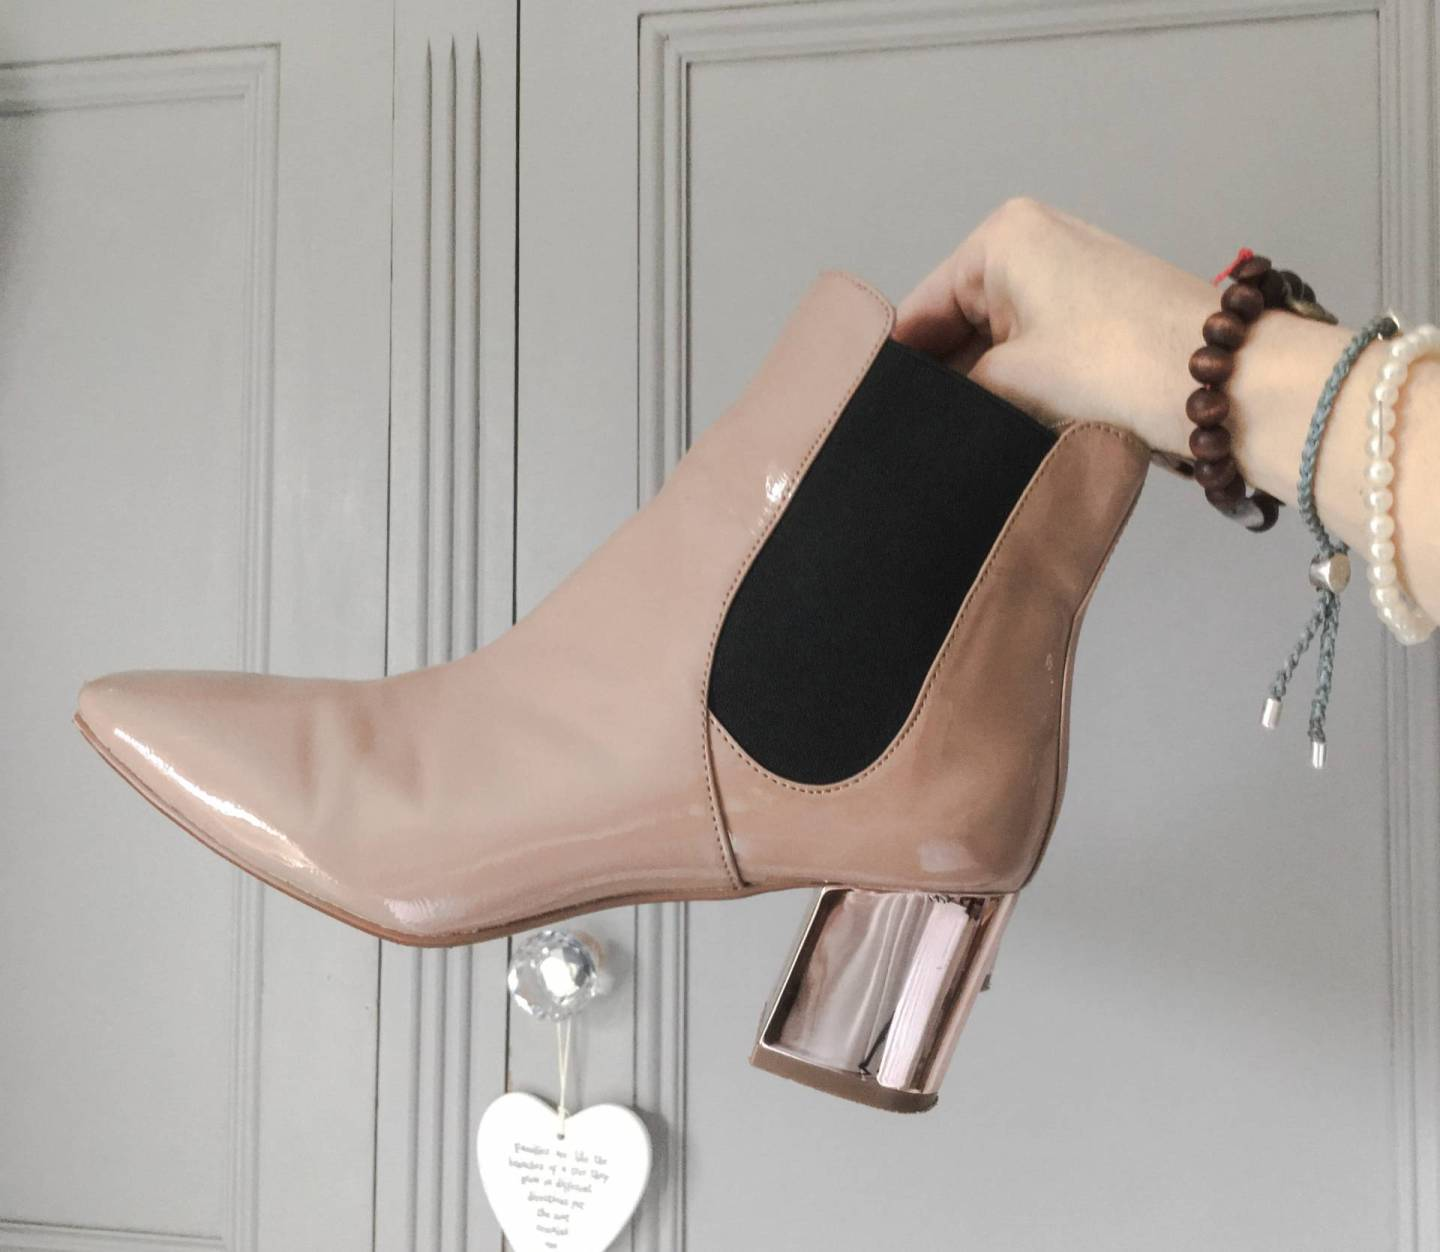 My top picks from the current collection at River Island this season are these nude Chelsea boots & classy navy wrap dress